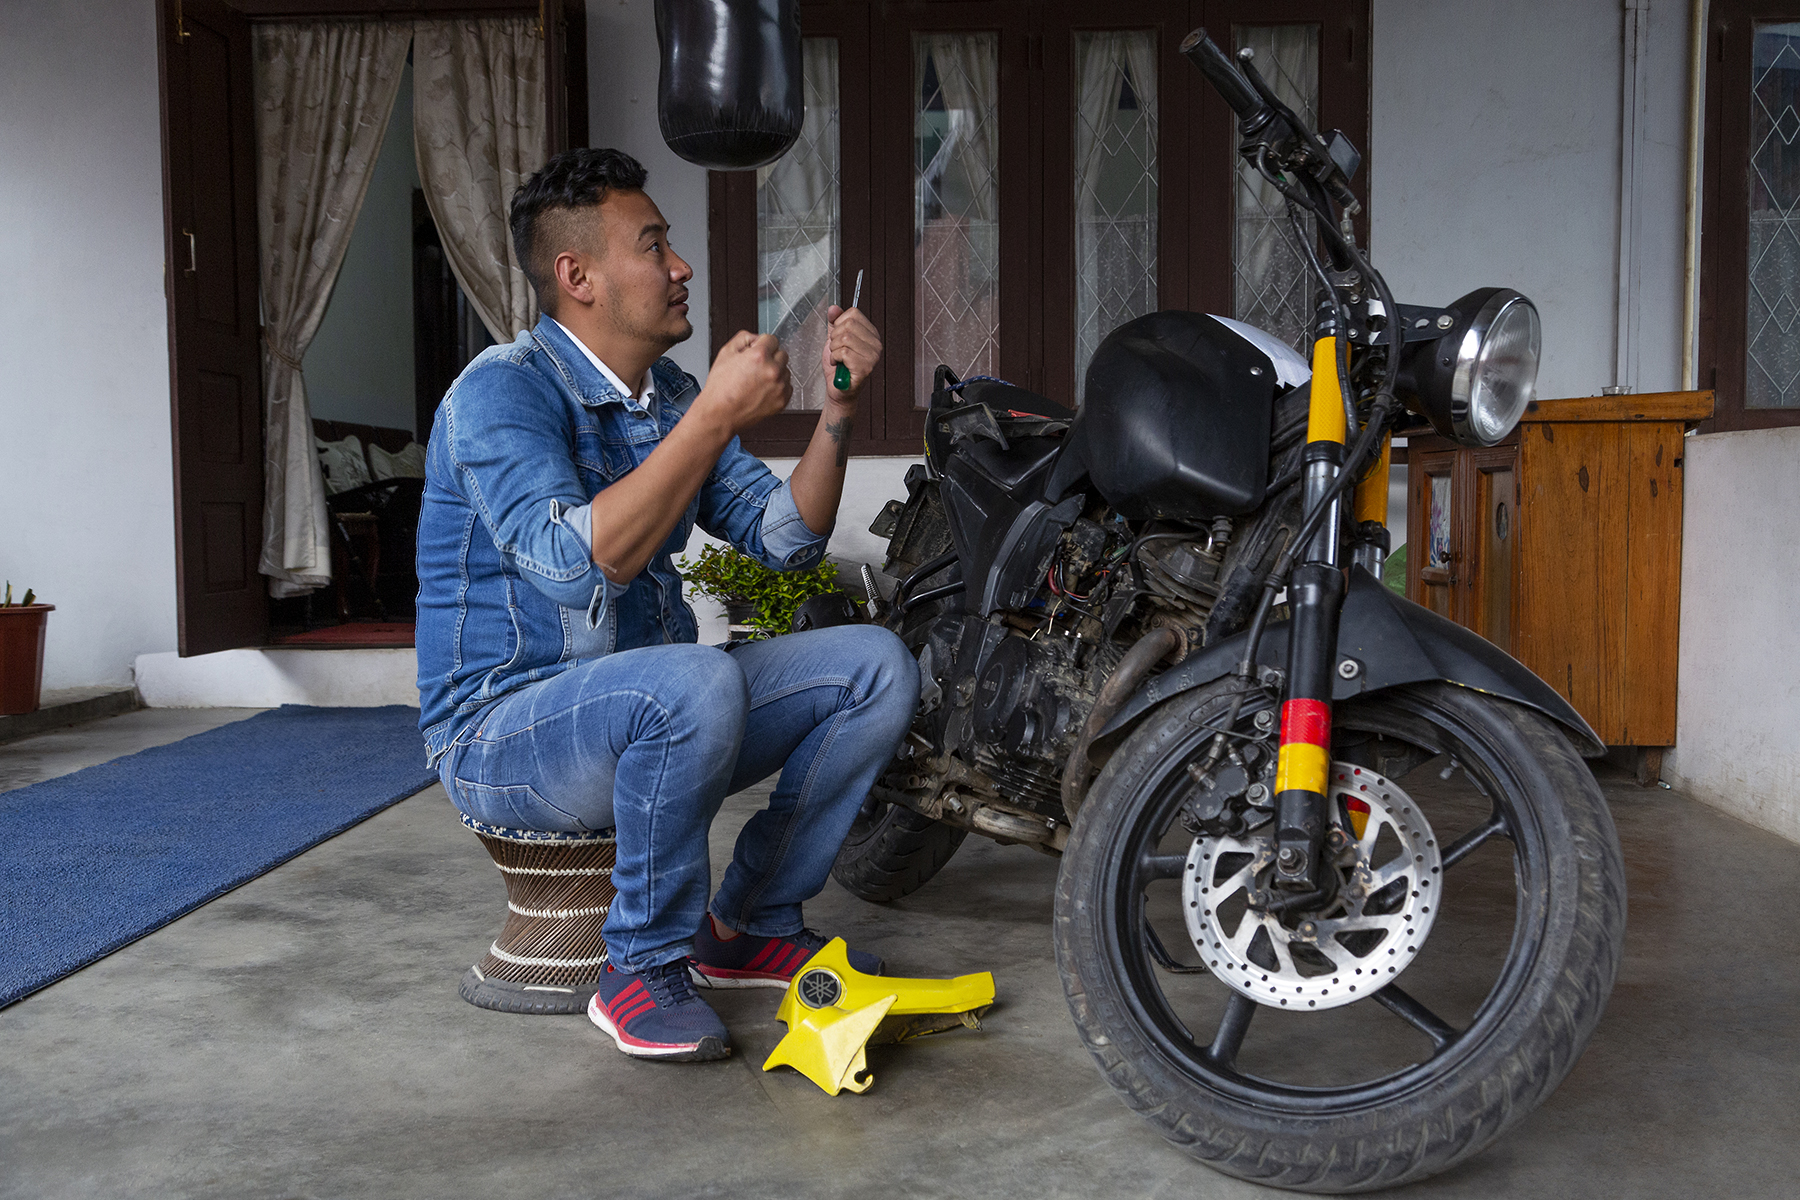 Kilumo in sky blue denim shirt and matching blue jeans is indoors, repairing his black motorbike. His arms are bent at the elbow as he holds up a screwdriver that he grips with his left hand, while his right hand is clenched in a fist.